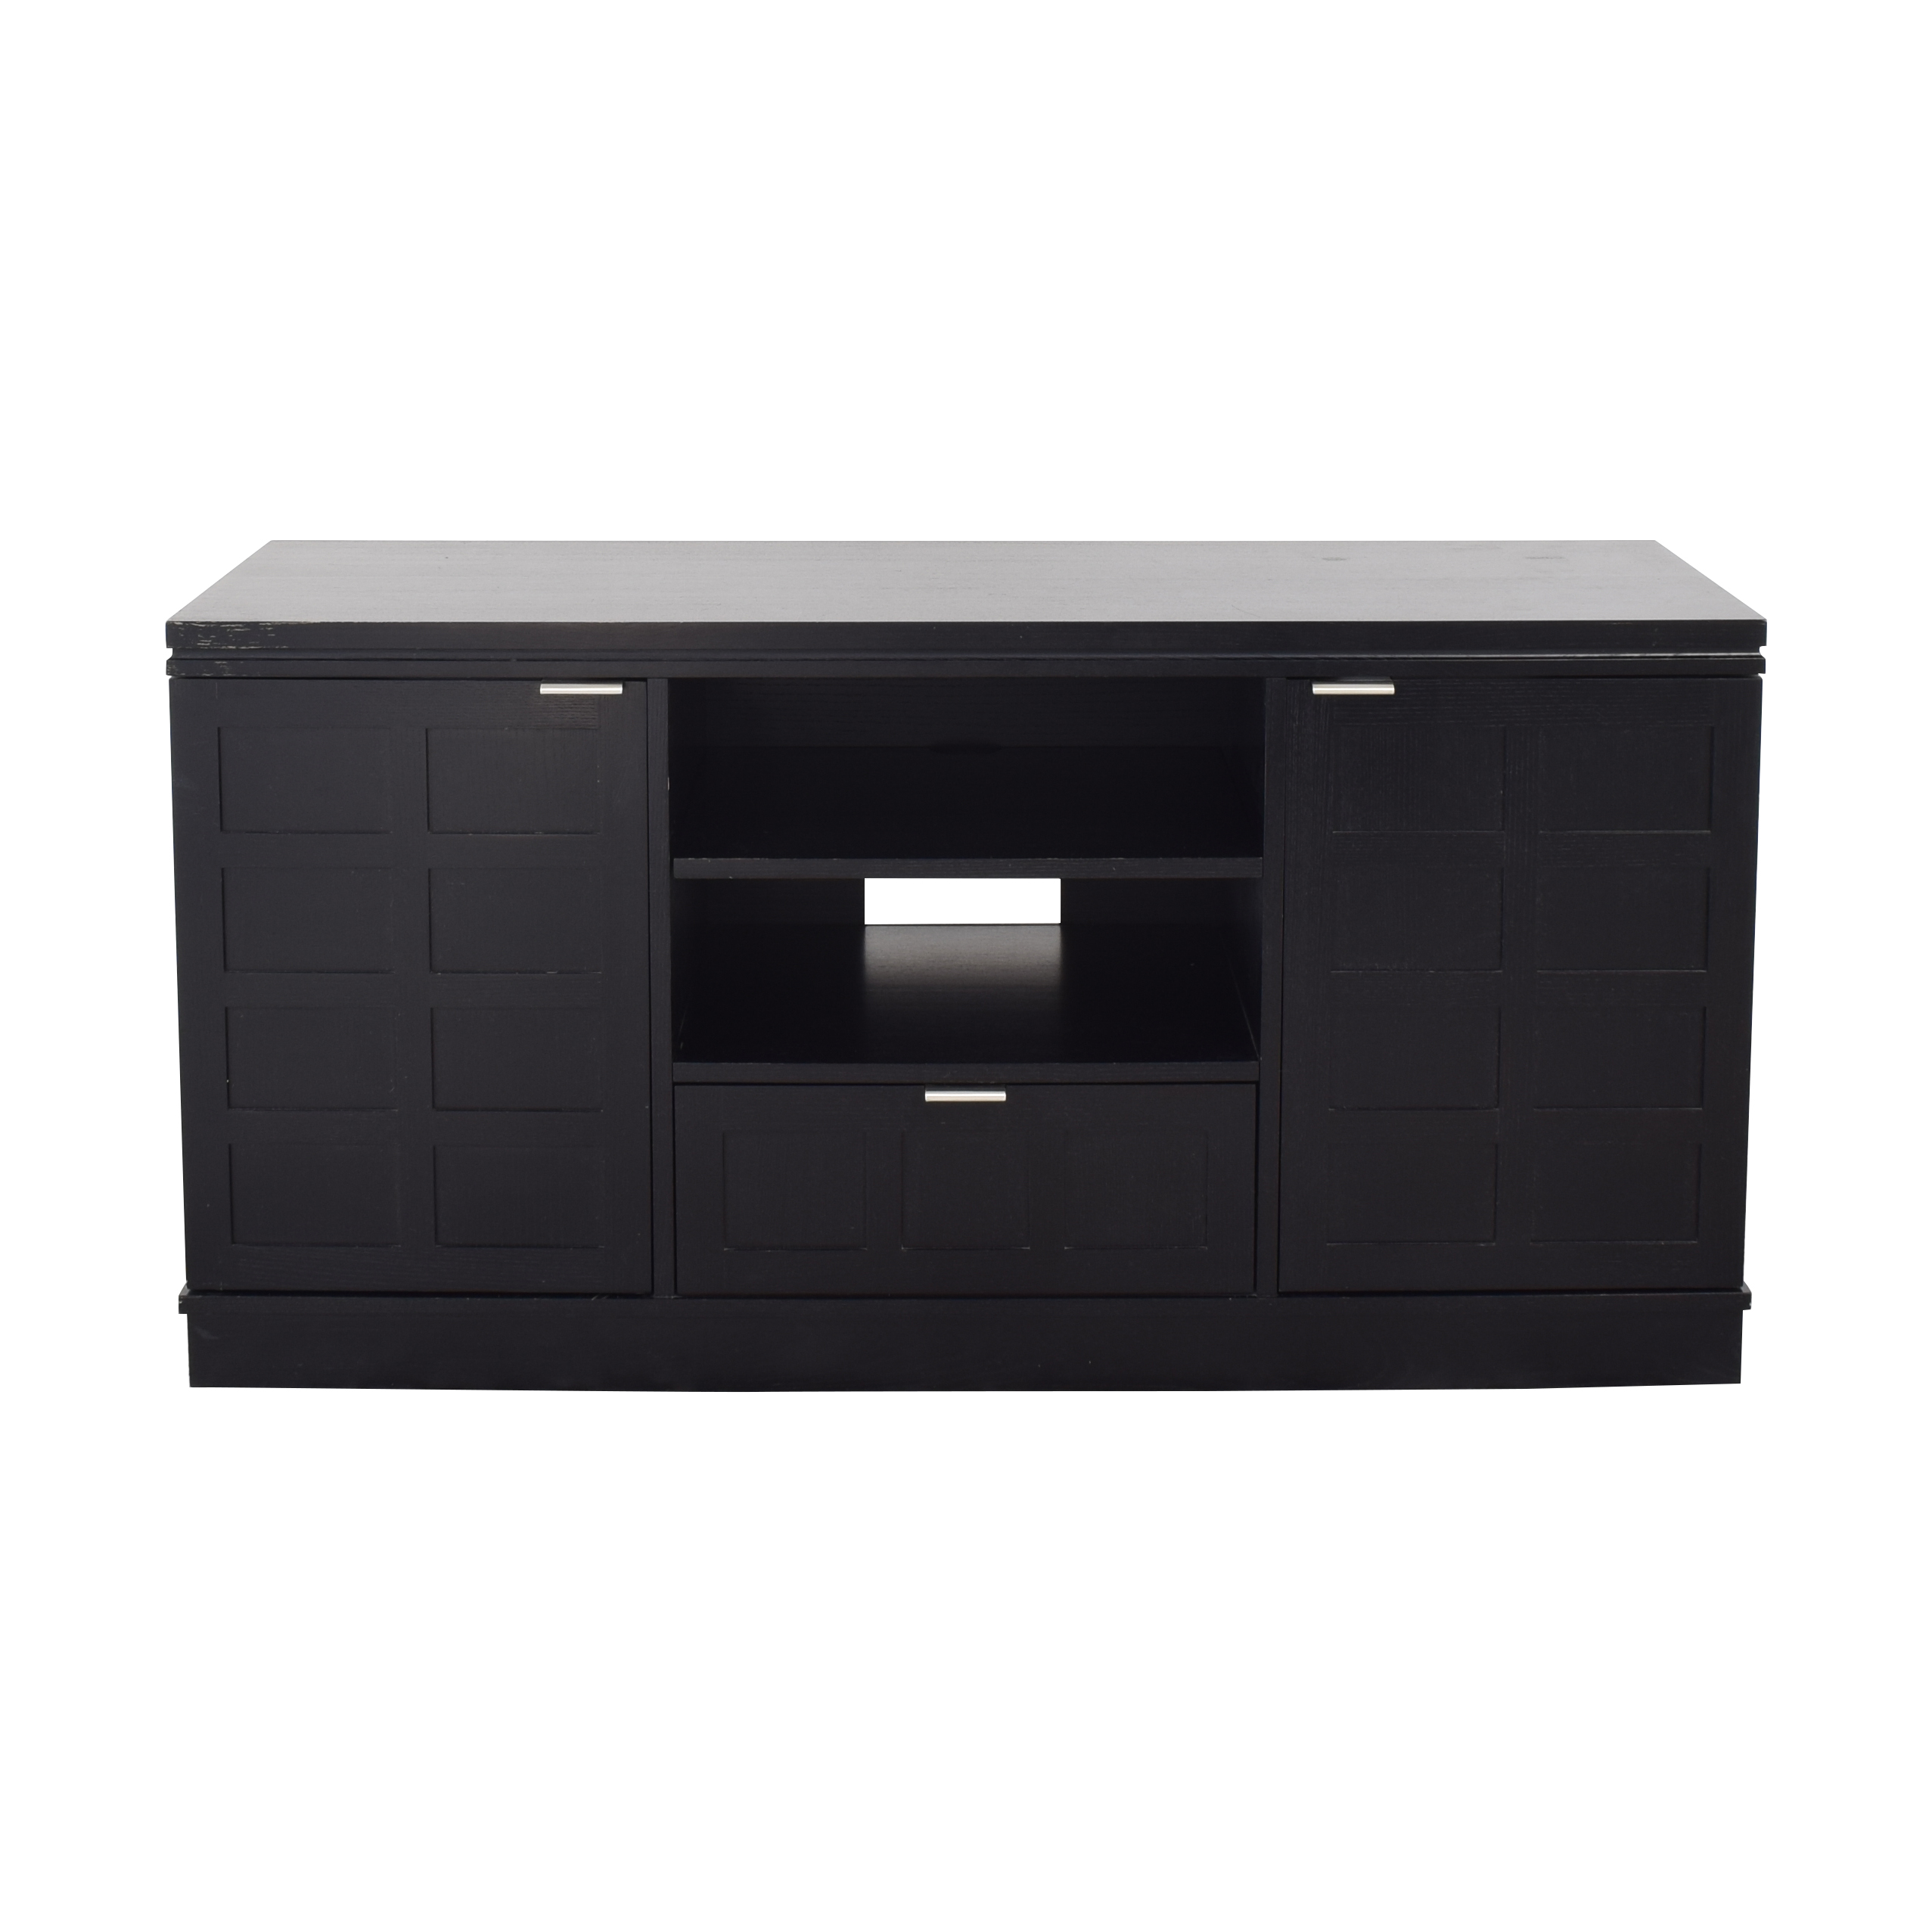 Crate & Barrel Crate & Barrel Wood Media Console black